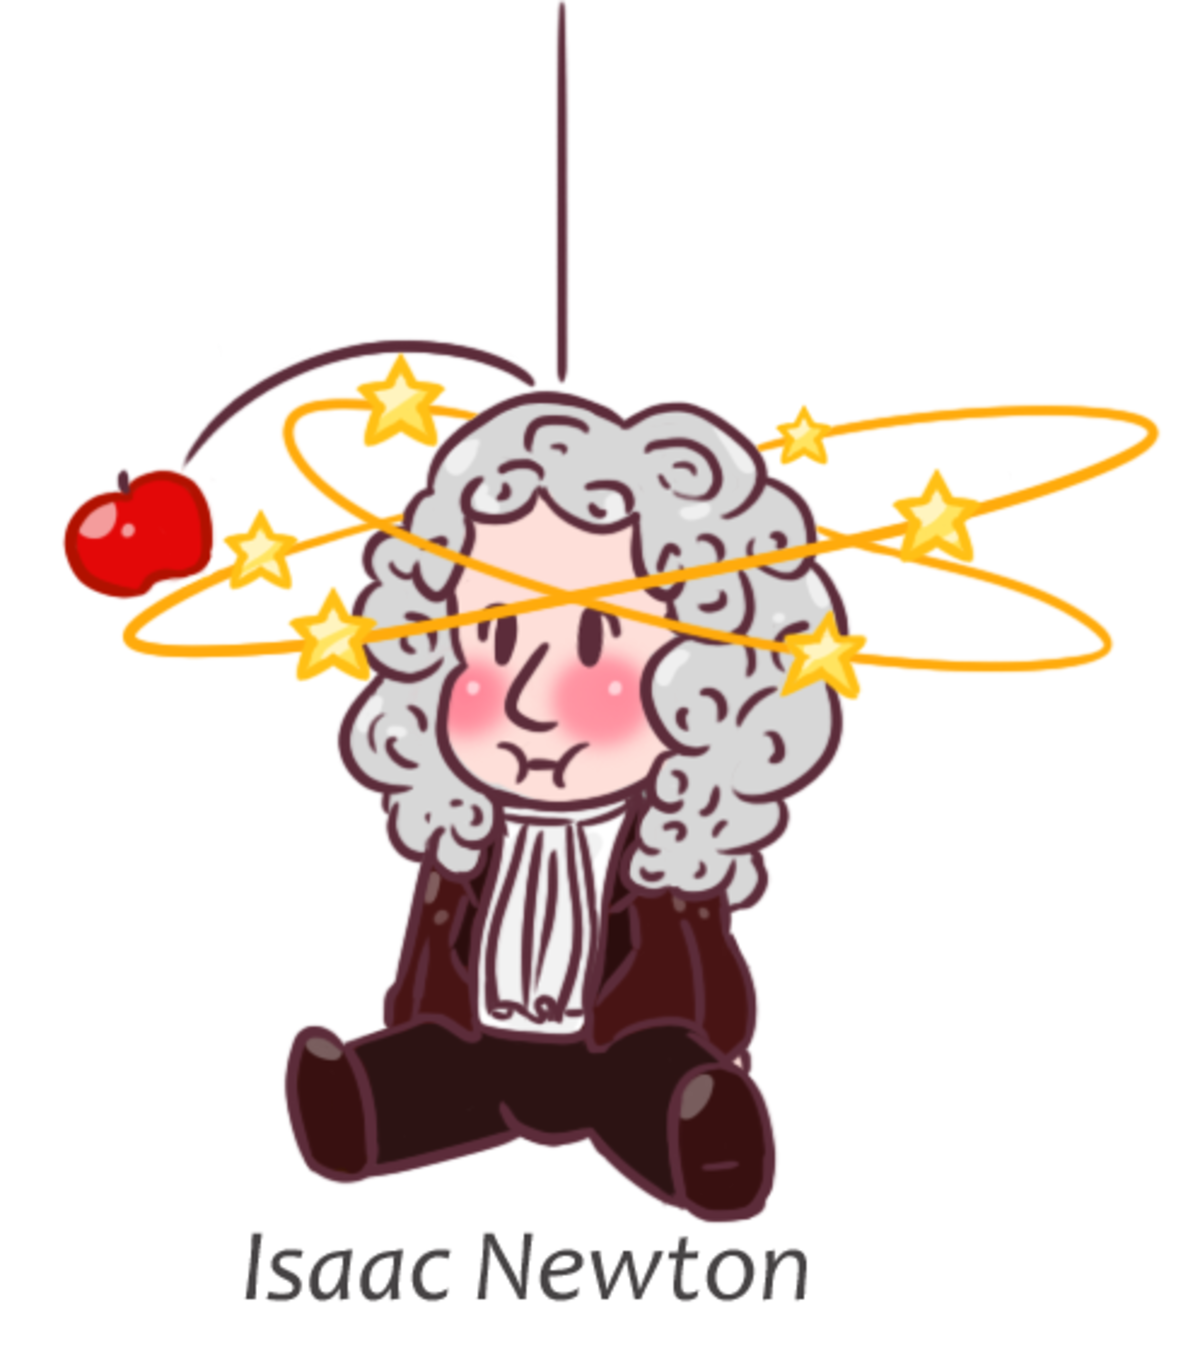 chibi Isaac Newton. For this week in chibi Tuesday Isaac Newton. The first and foremost thing that any chibi series is meant to be is cute. I may take some crea